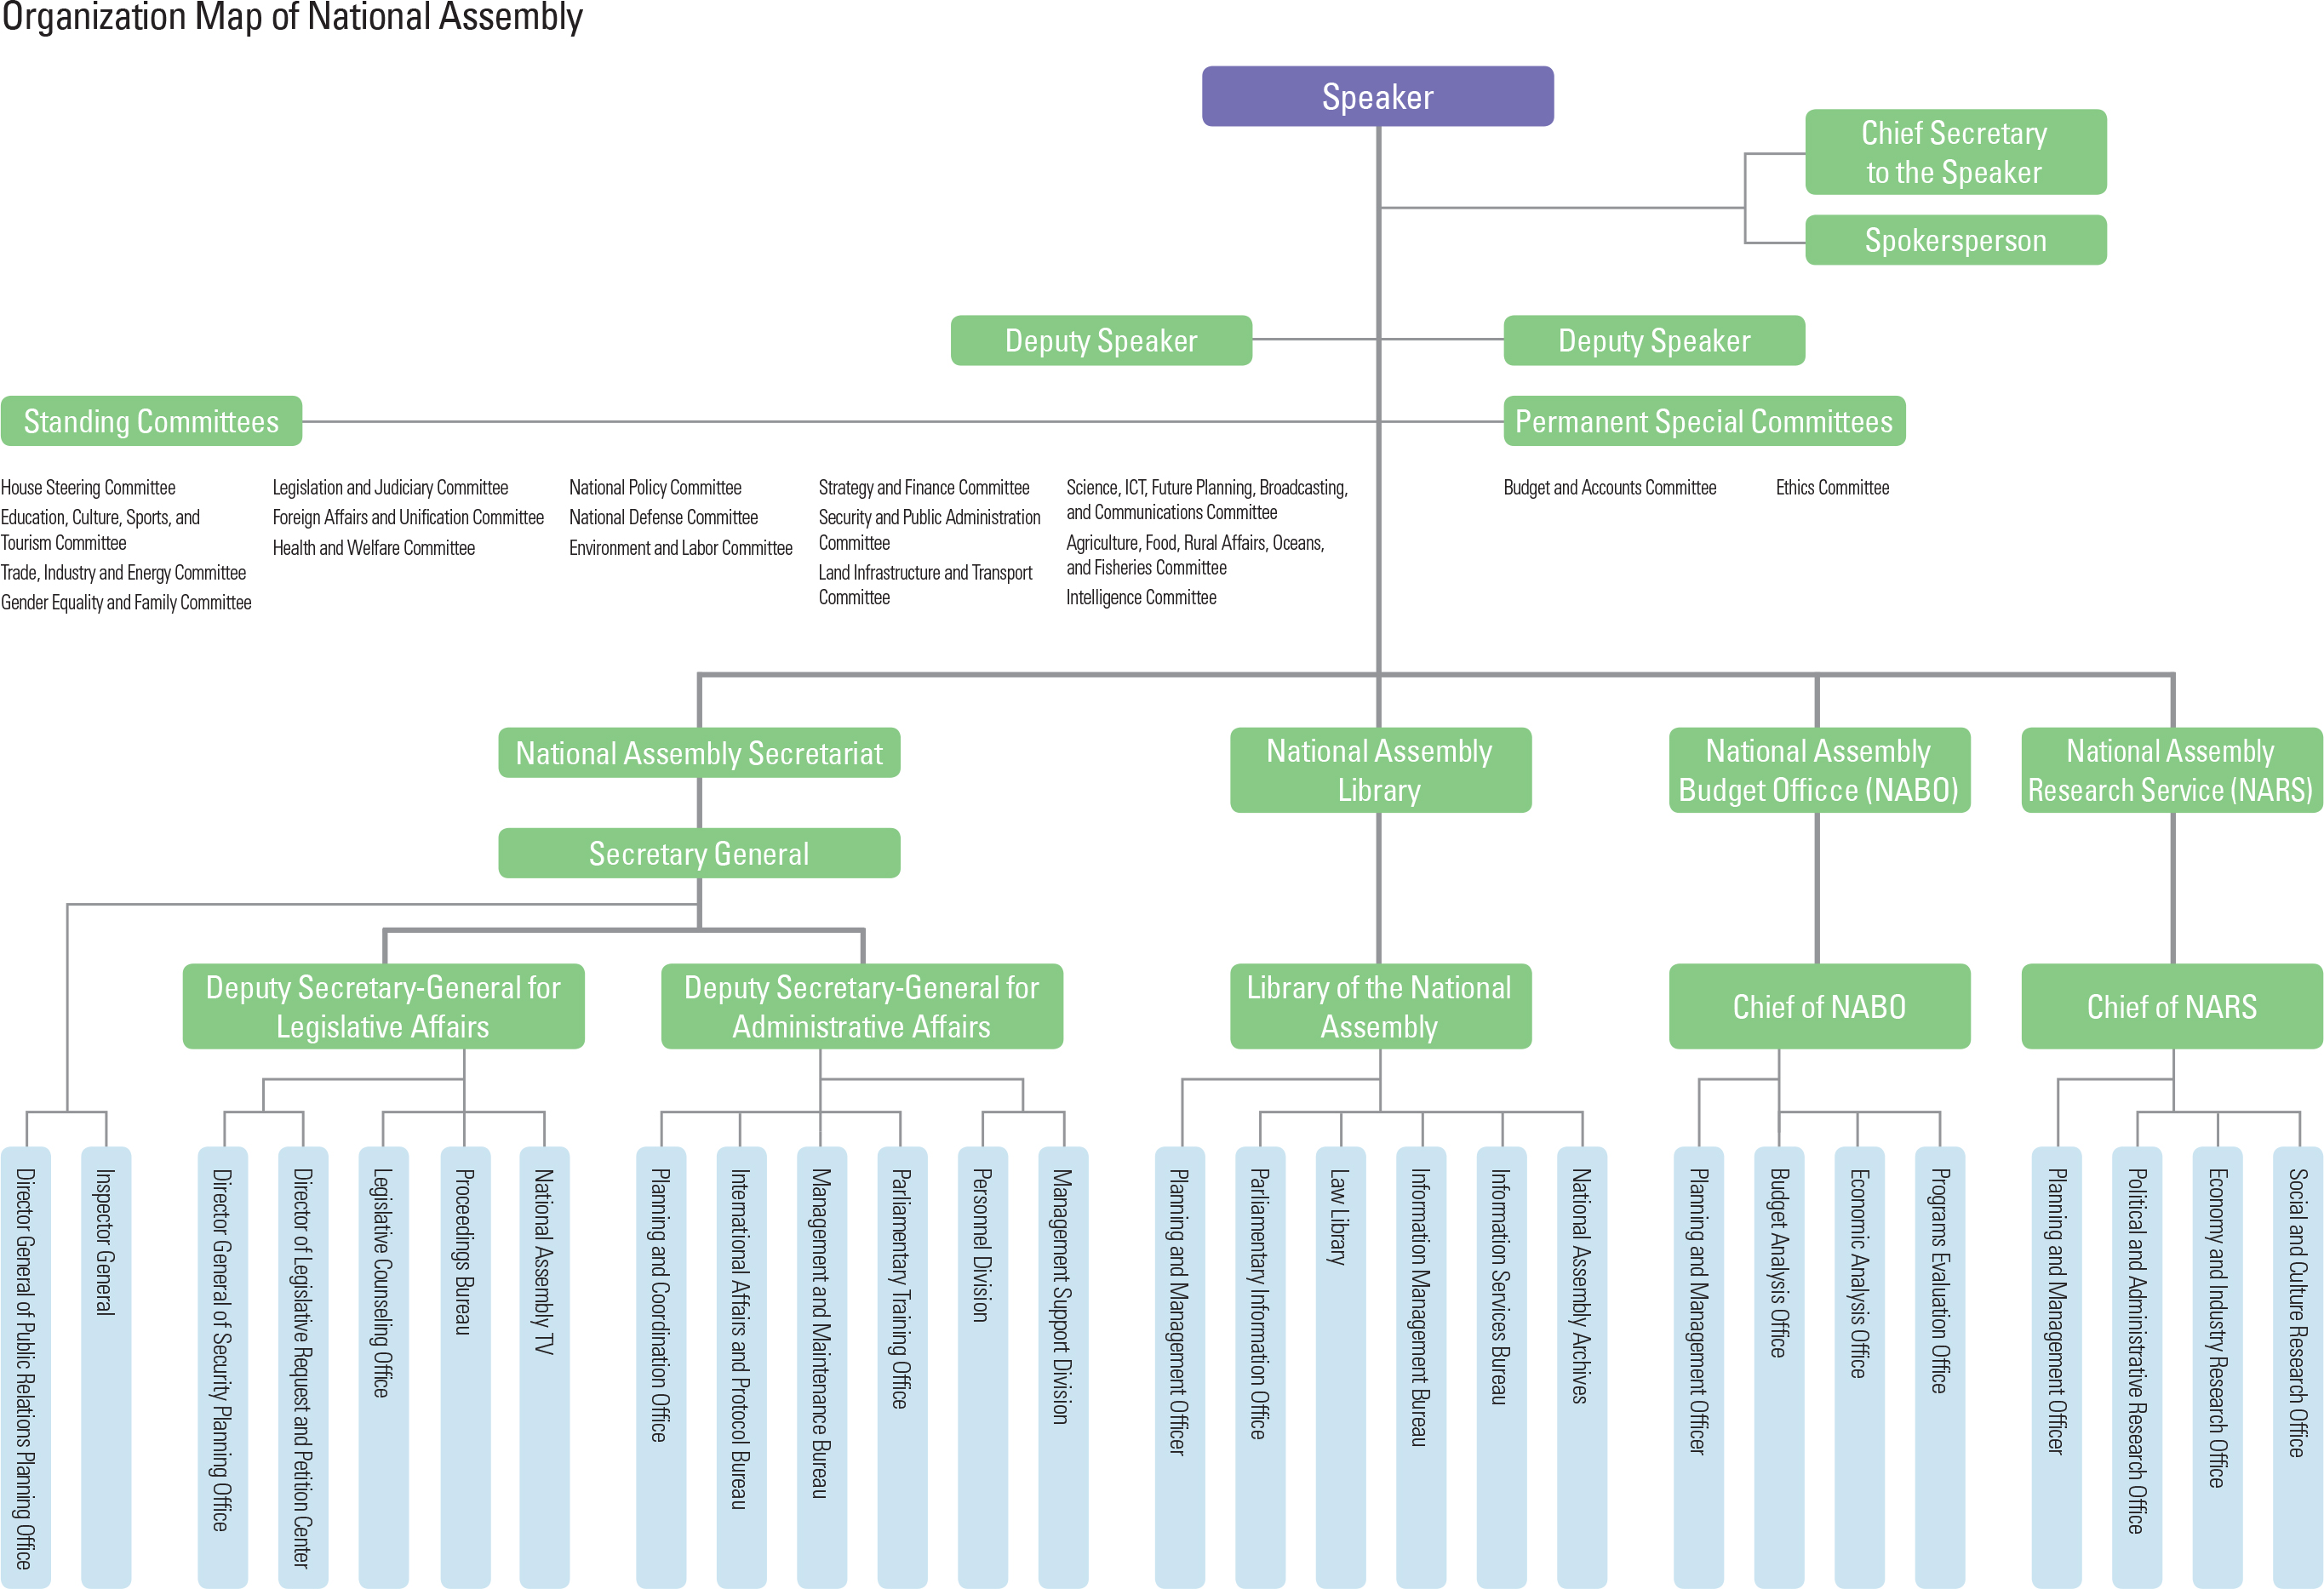 """Organization Map of National Assembly<p class=""""oz_zoom"""" zimg=""""http://imagedata.cafe24.com/us_1/us1_52-1_2.jpg""""><span style=""""font-family:Nanum Myeongjo;""""><span style=""""font-size:18px;""""><span class=""""label label-danger"""">UPDATE DATA</span></span></p>"""